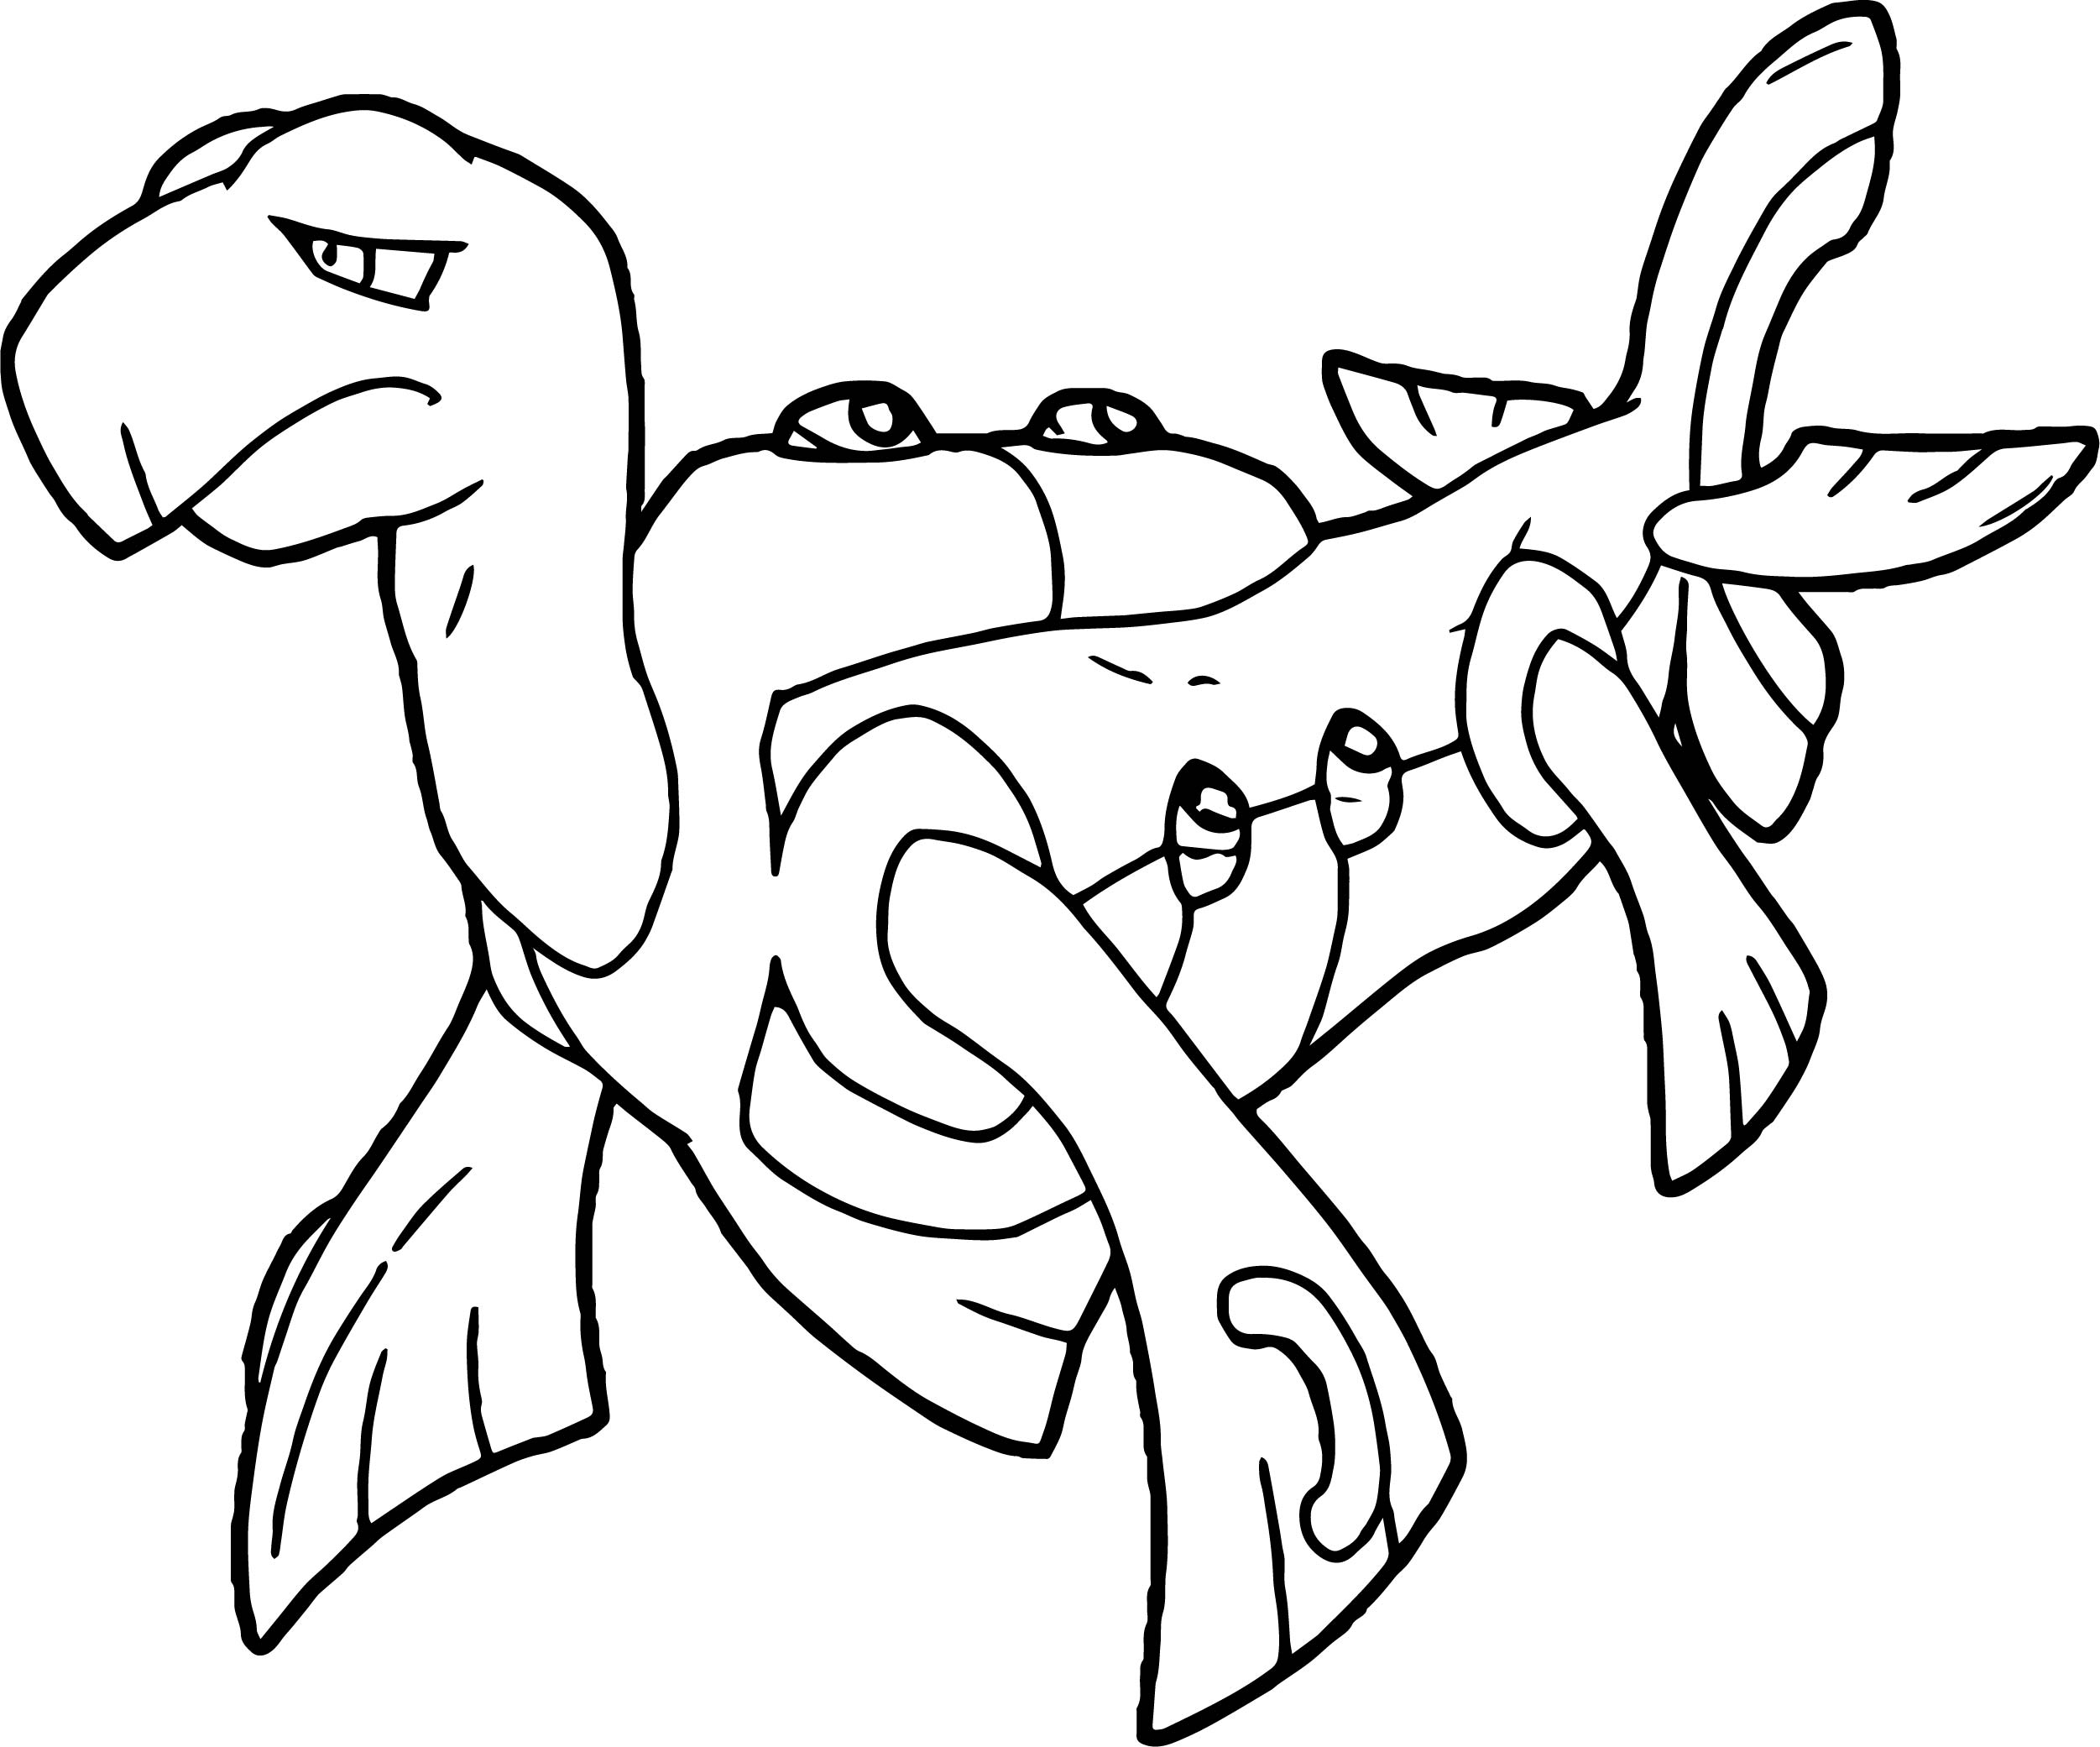 Big Tortoise Turtle Coloring Page